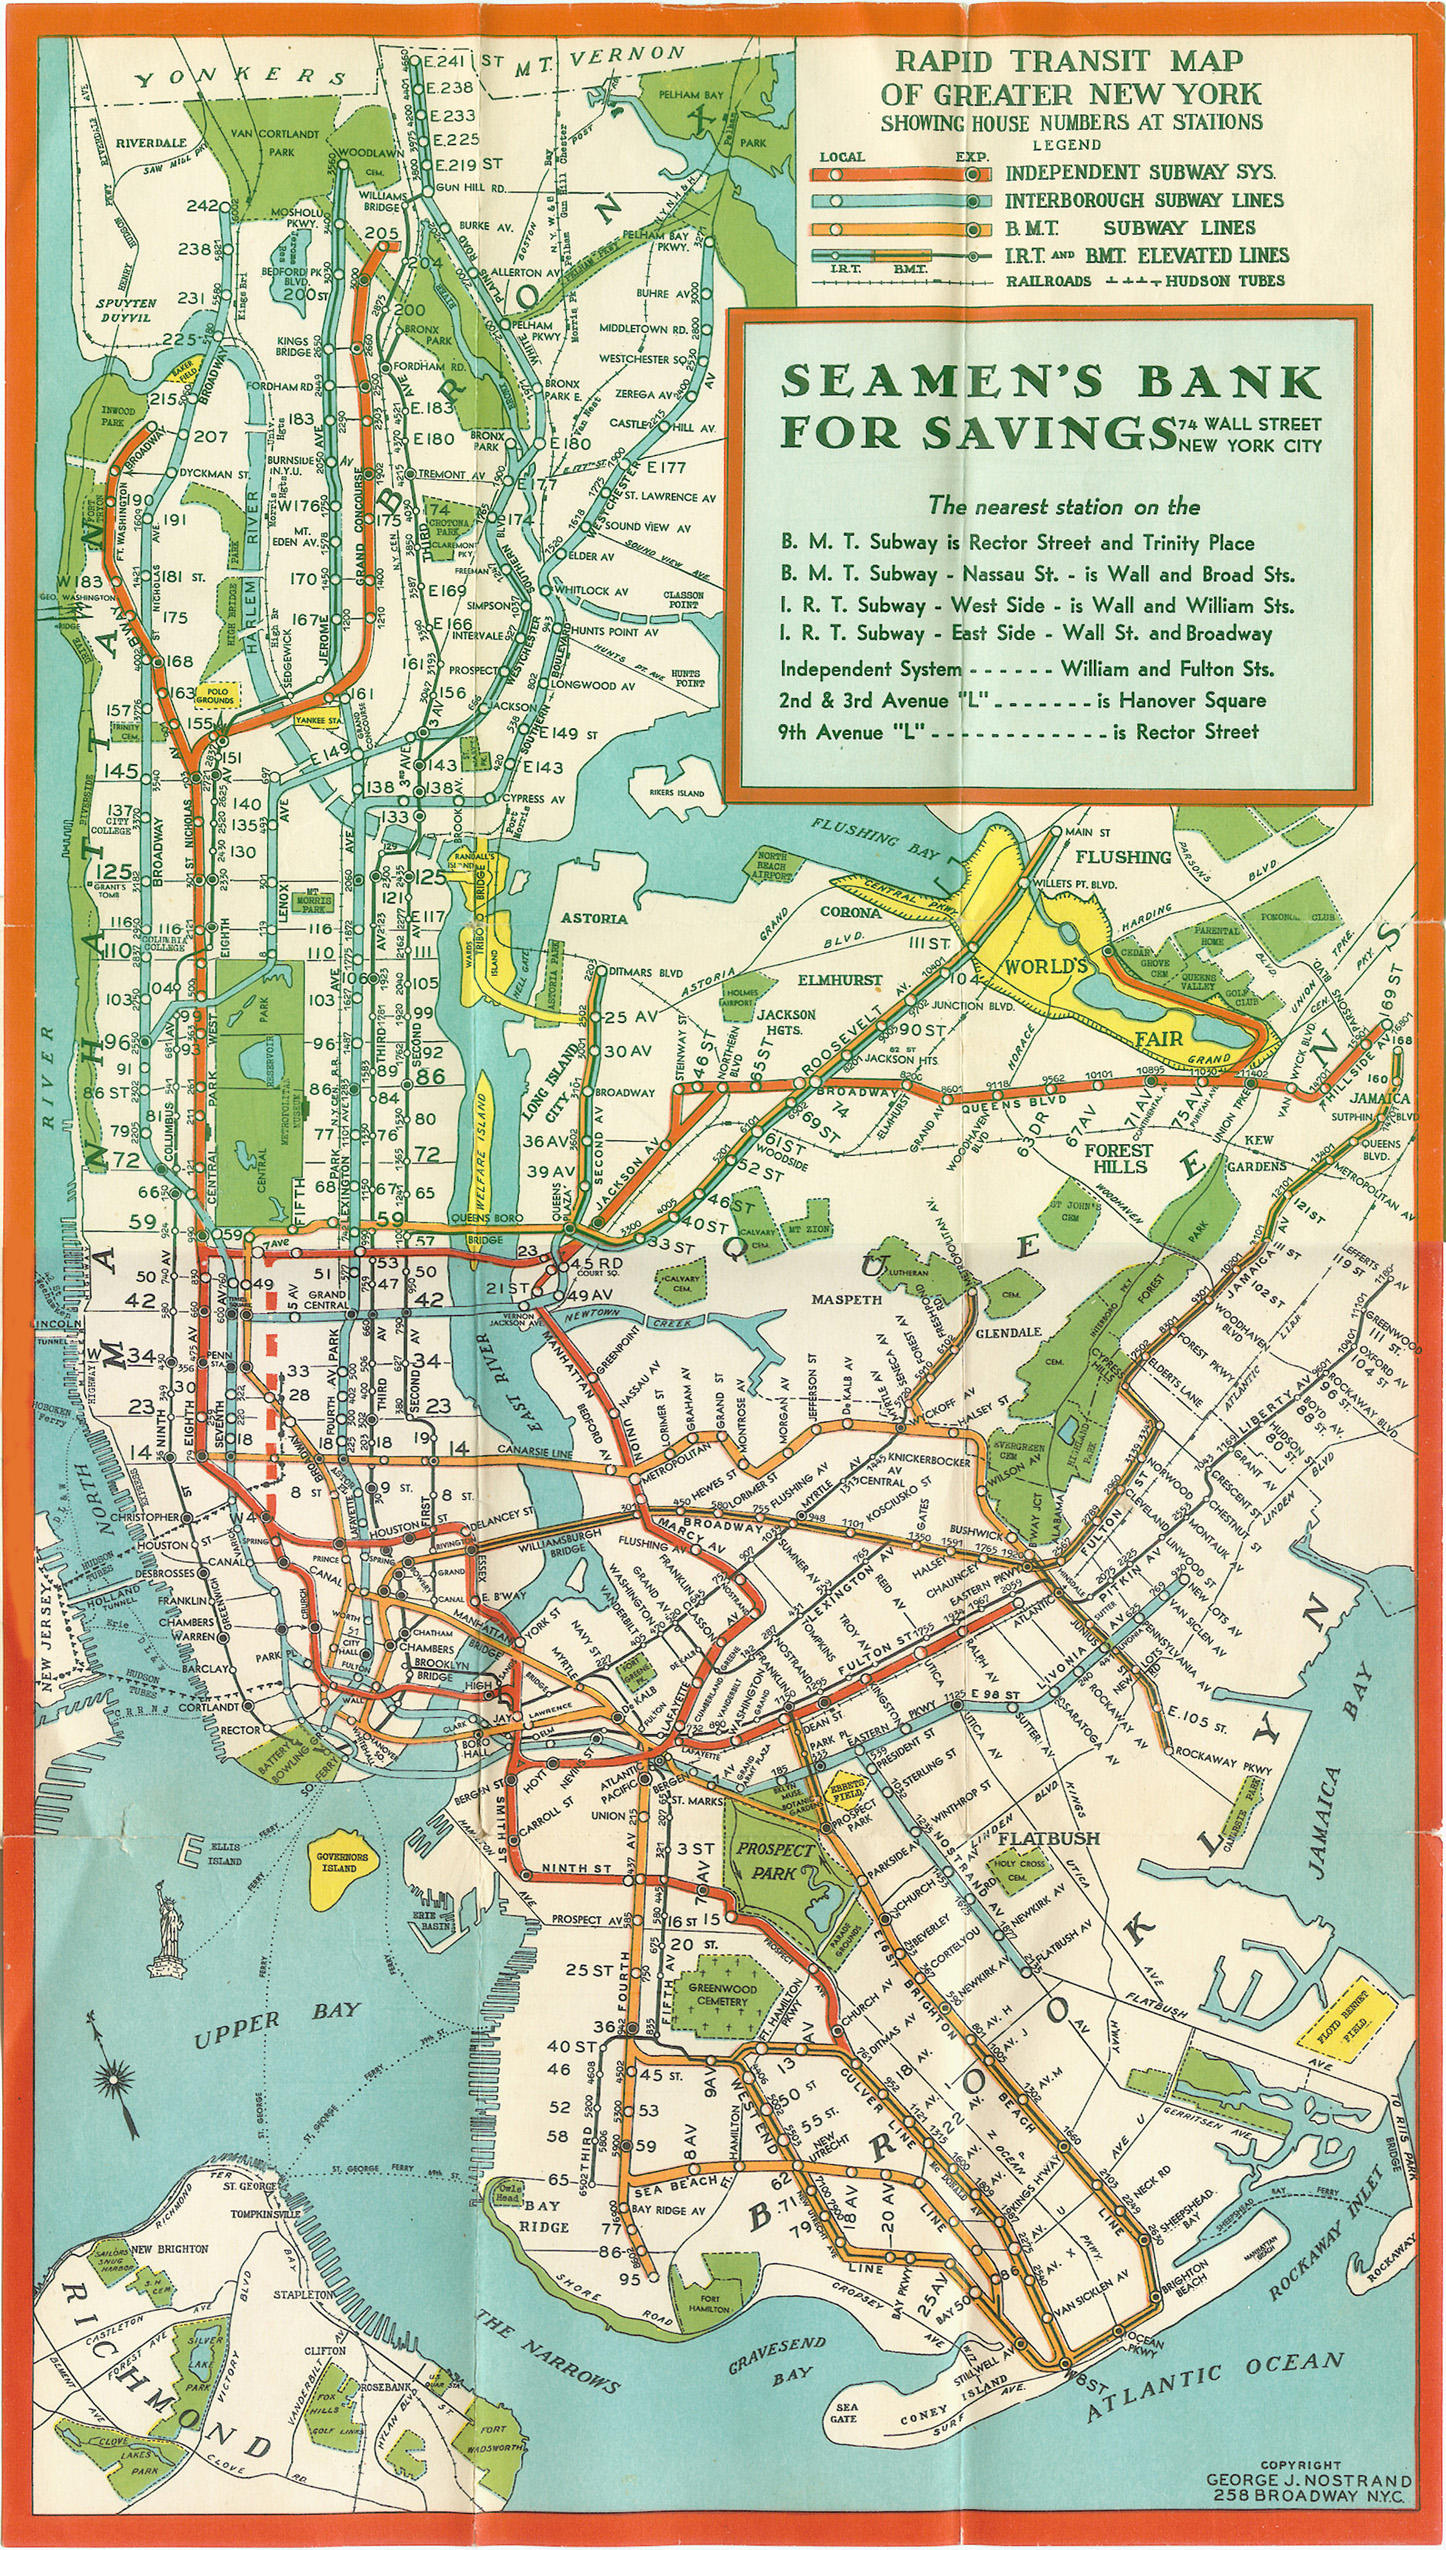 Metro Nyc Map Pdf.Metro Nyc Guide Map Free Wiring Diagram For You